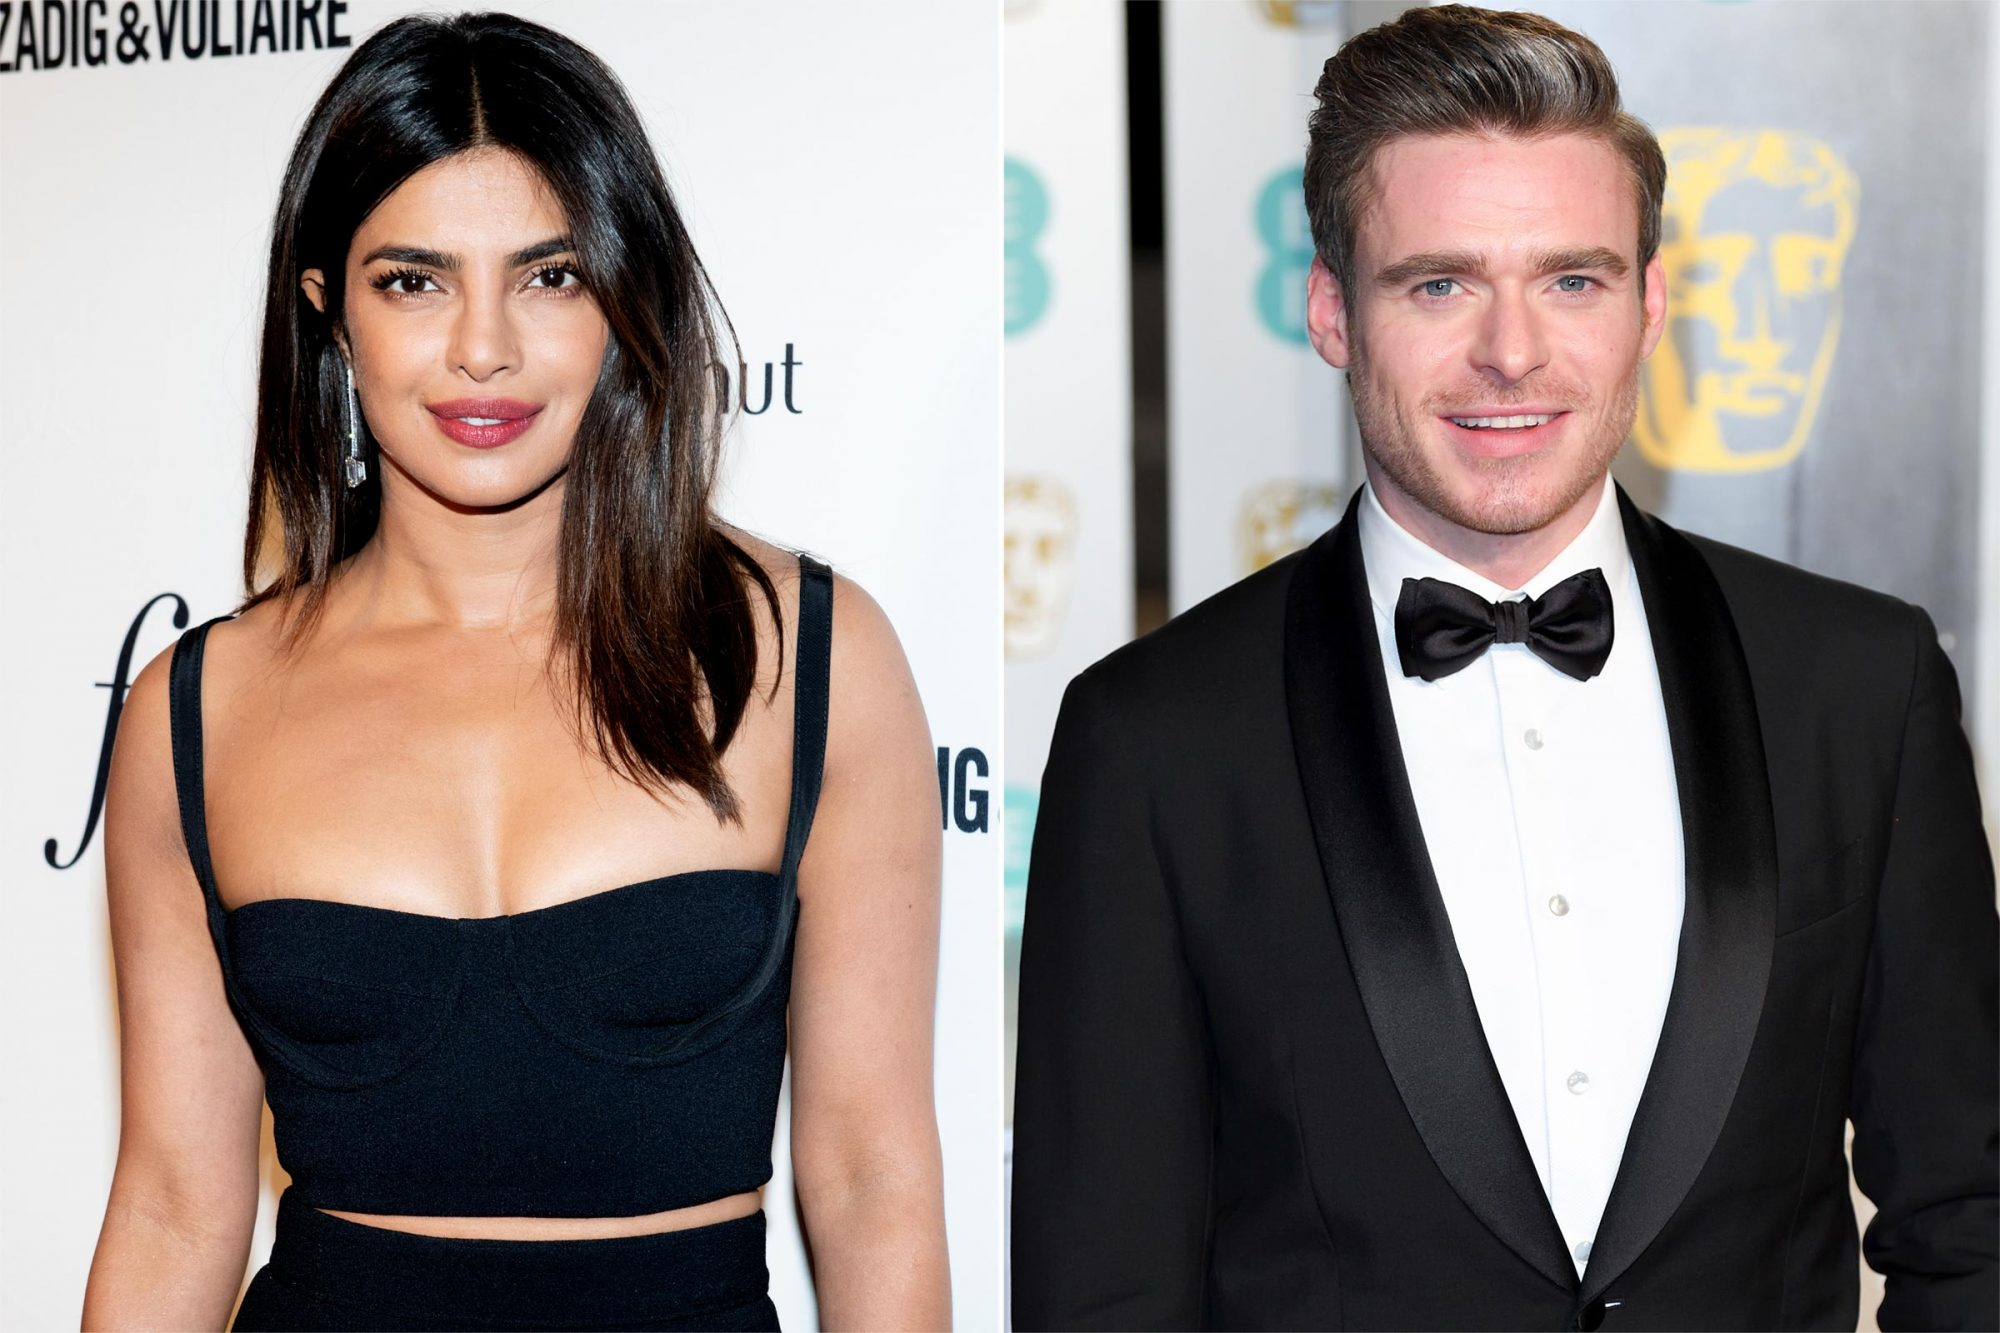 Priyanka Chopra / Richard Madden